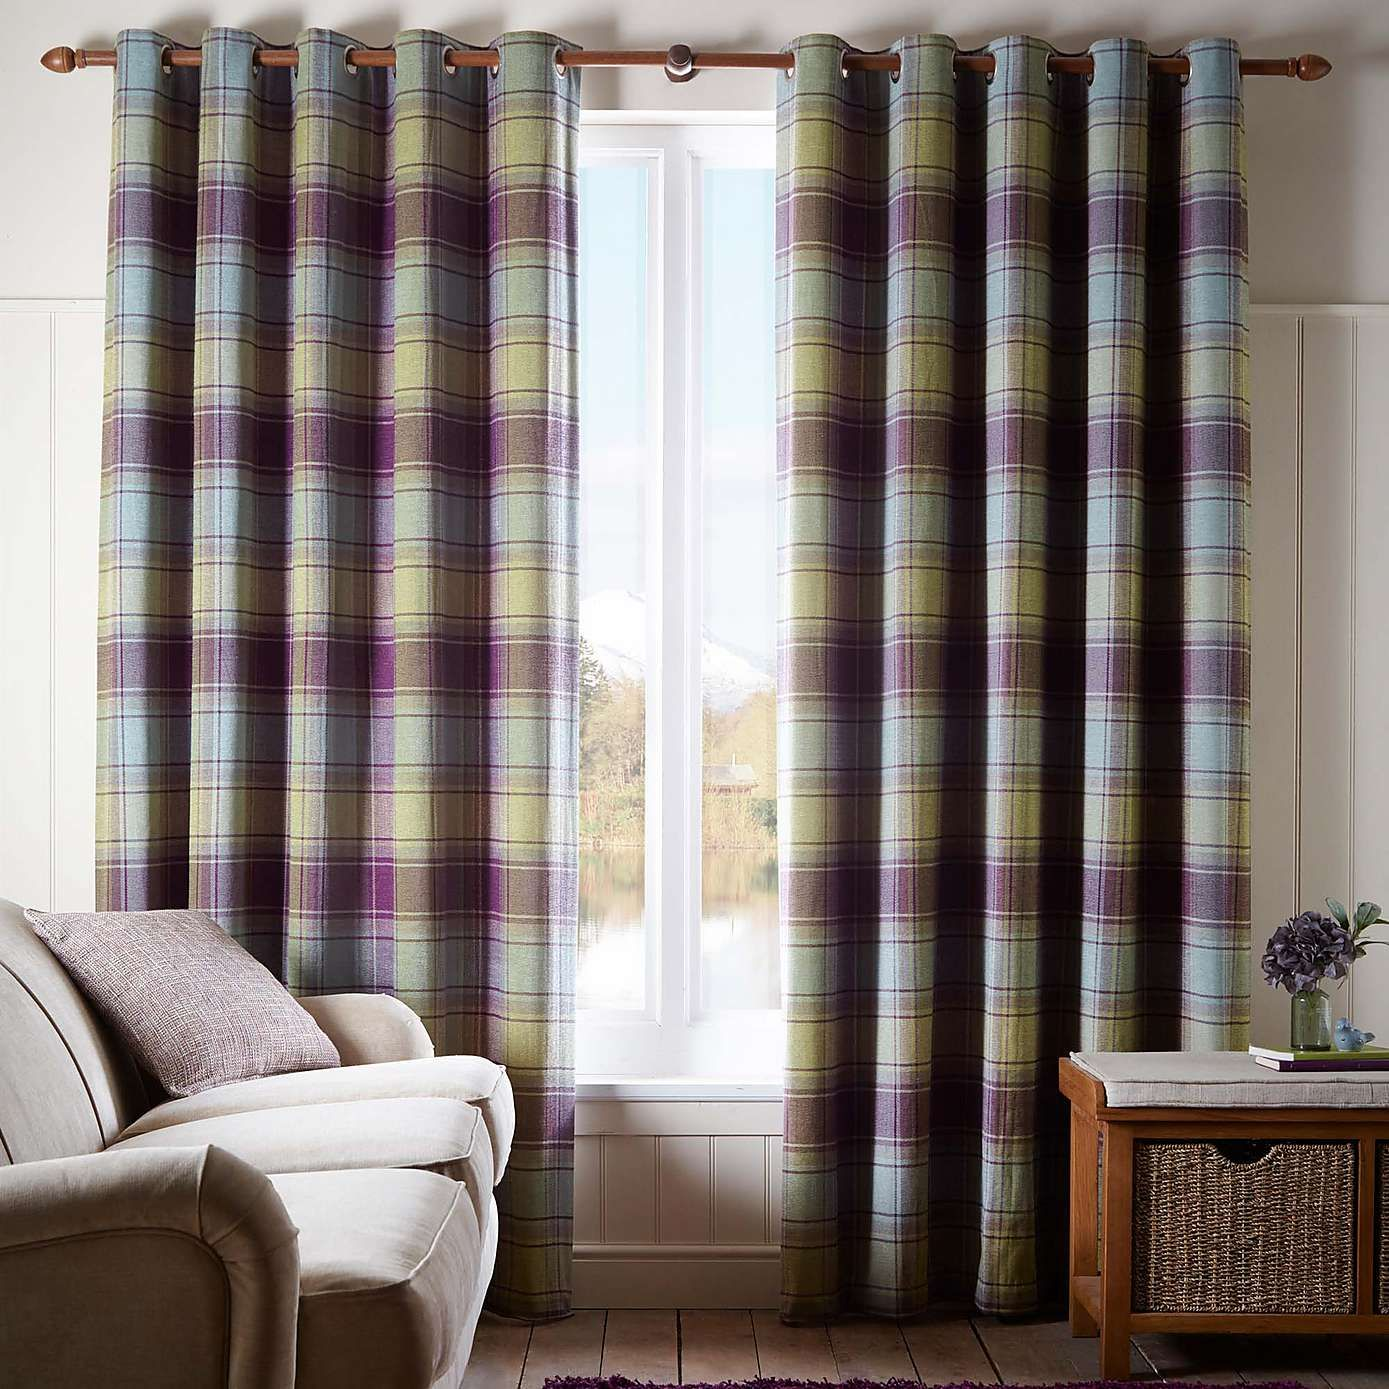 Orkney Purple Check Eyelet Curtains - Dunelm